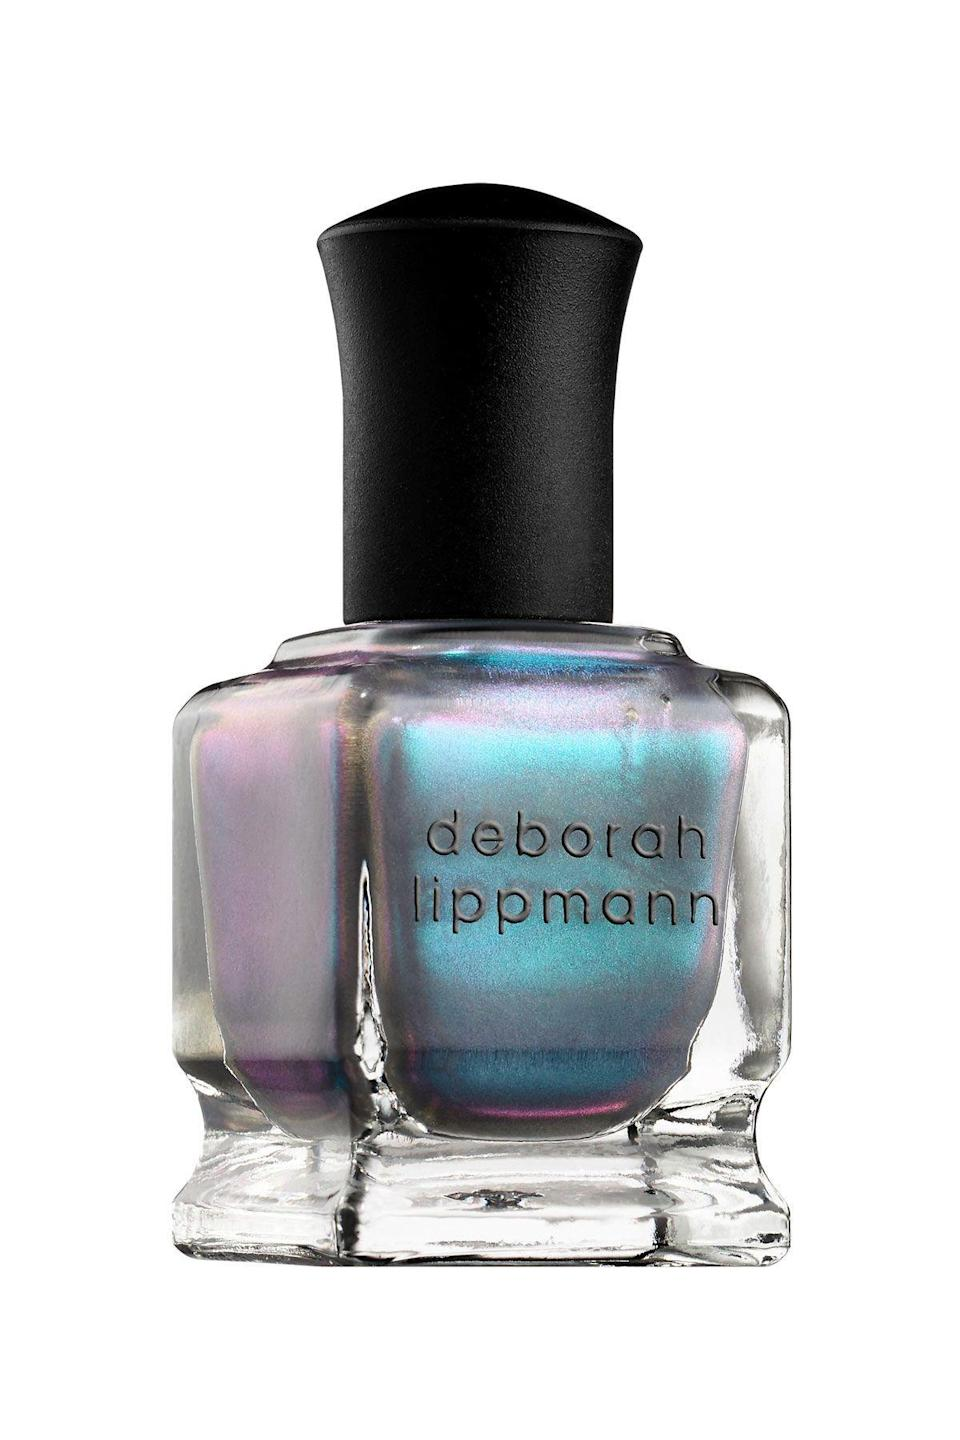 """<p><strong>Deborah Lippmann</strong></p><p>sephora.com</p><p><strong>$20.00</strong></p><p><a href=""""https://go.redirectingat.com?id=74968X1596630&url=https%3A%2F%2Fwww.sephora.com%2Fproduct%2Fgel-lab-pro-nail-polish-P404918&sref=https%3A%2F%2Fwww.seventeen.com%2Fbeauty%2Fnails%2Fg2741%2Fbest-spring-nail-colors%2F"""" rel=""""nofollow noopener"""" target=""""_blank"""" data-ylk=""""slk:SHOP NOW"""" class=""""link rapid-noclick-resp"""">SHOP NOW</a></p><p>If you're looking for something a little ~extra~, this turquoise shimmer is so much fun. Plus, your nails will glisten from afar.</p>"""